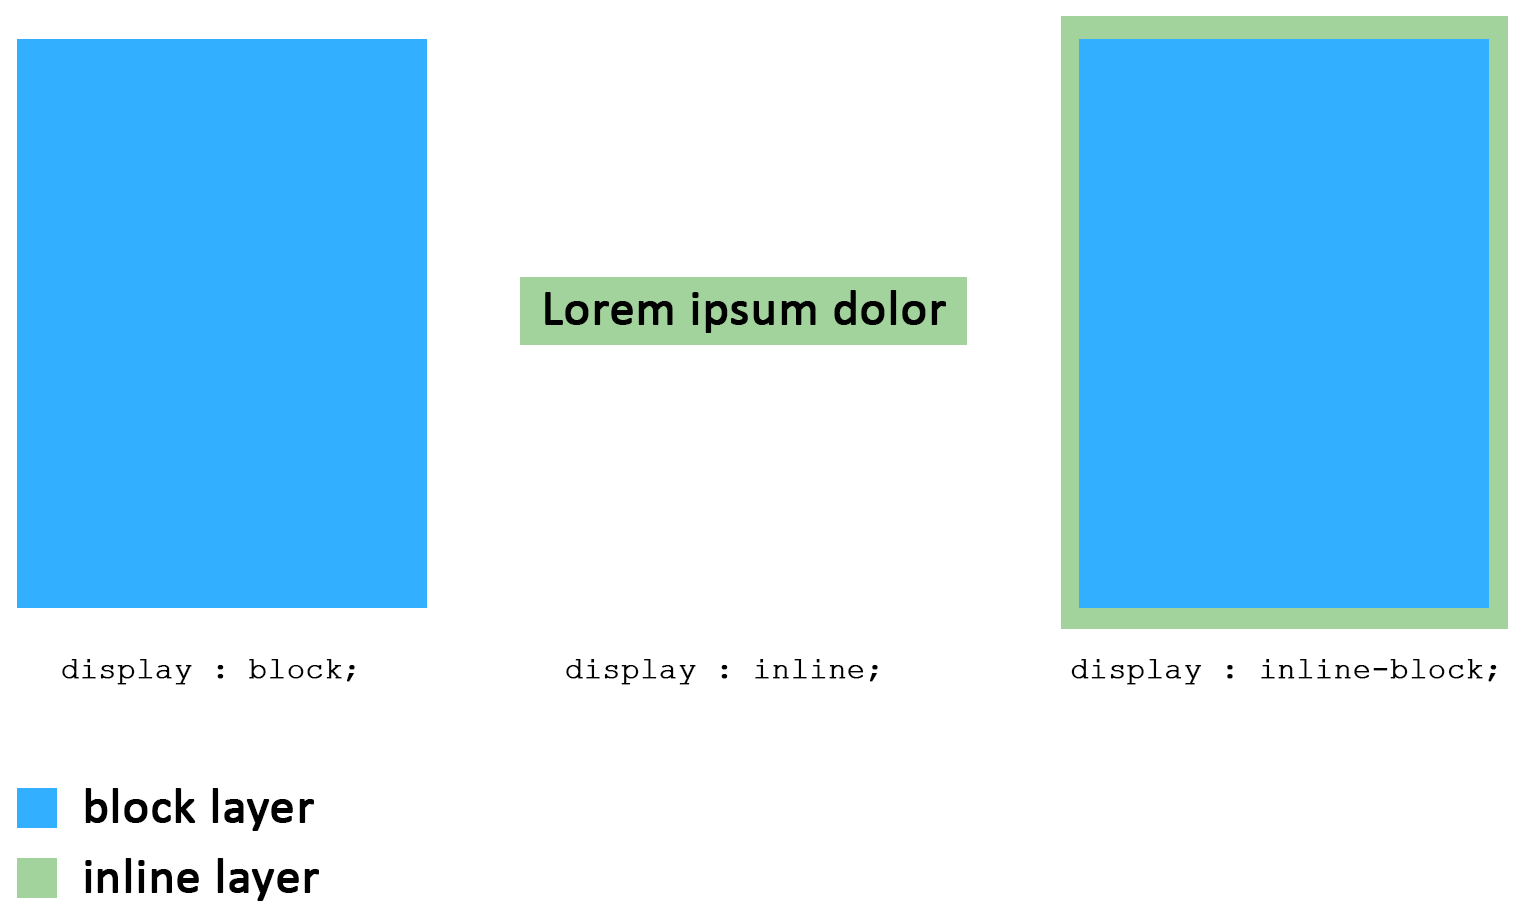 display-inline-block